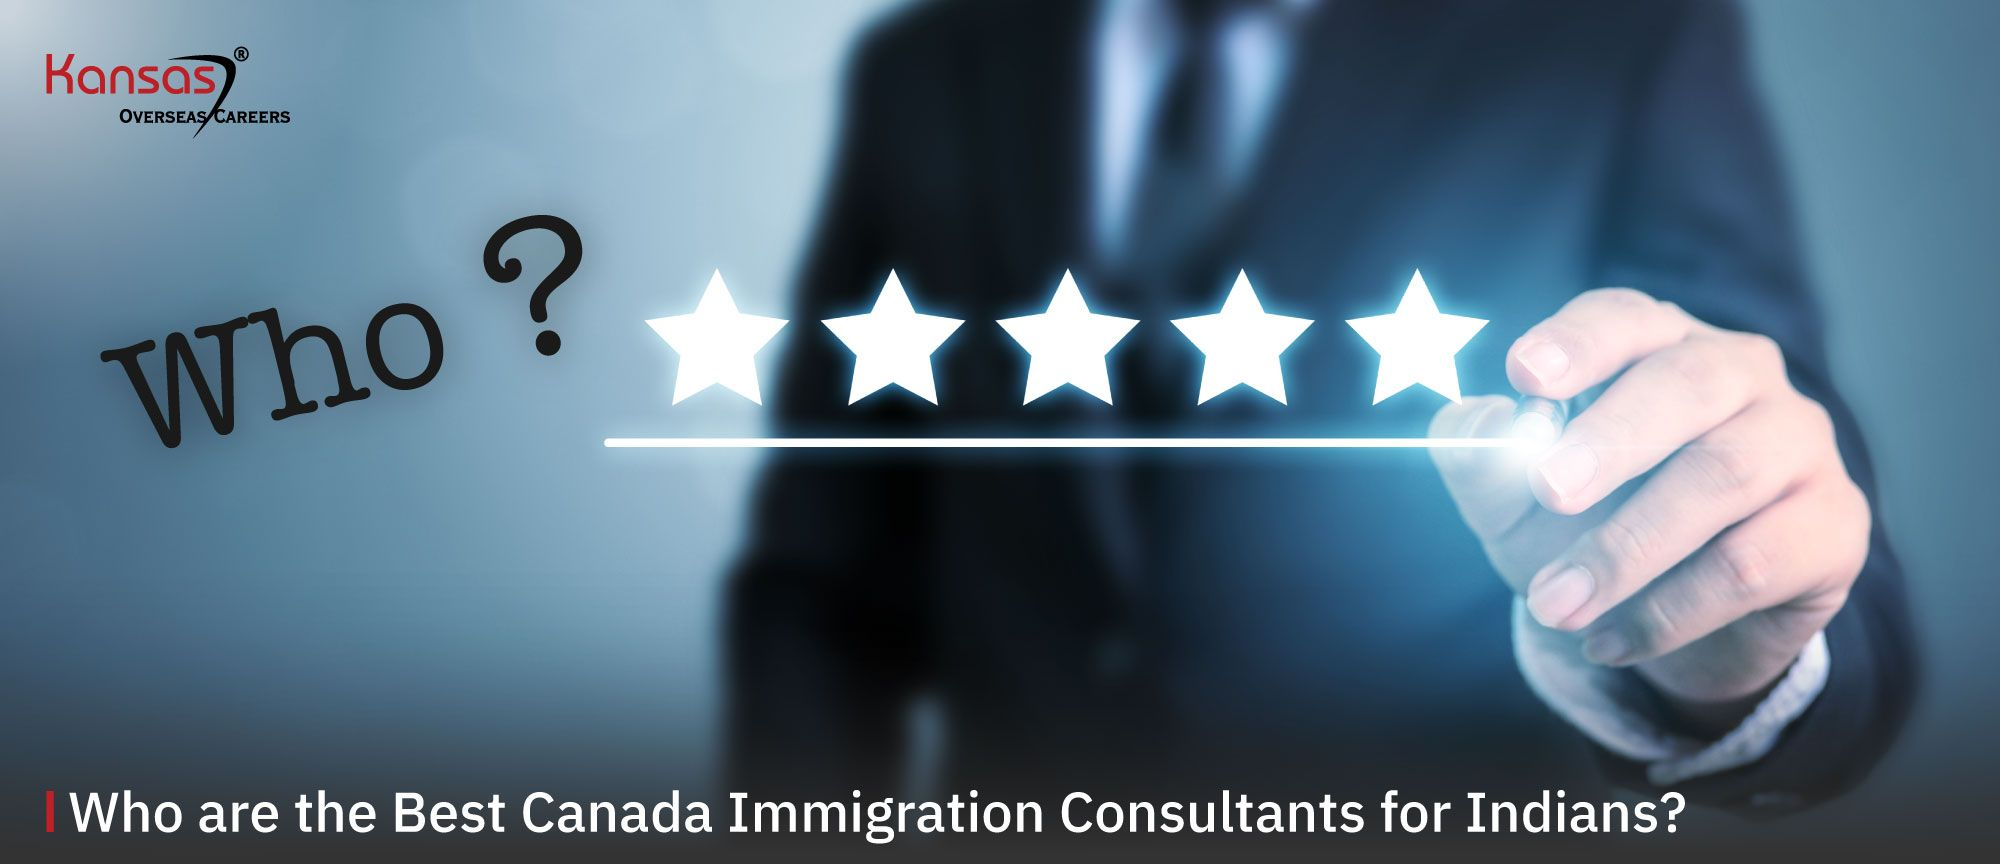 Who-are-the-Best-Canada-Immigration-Consultants-for-Indians-